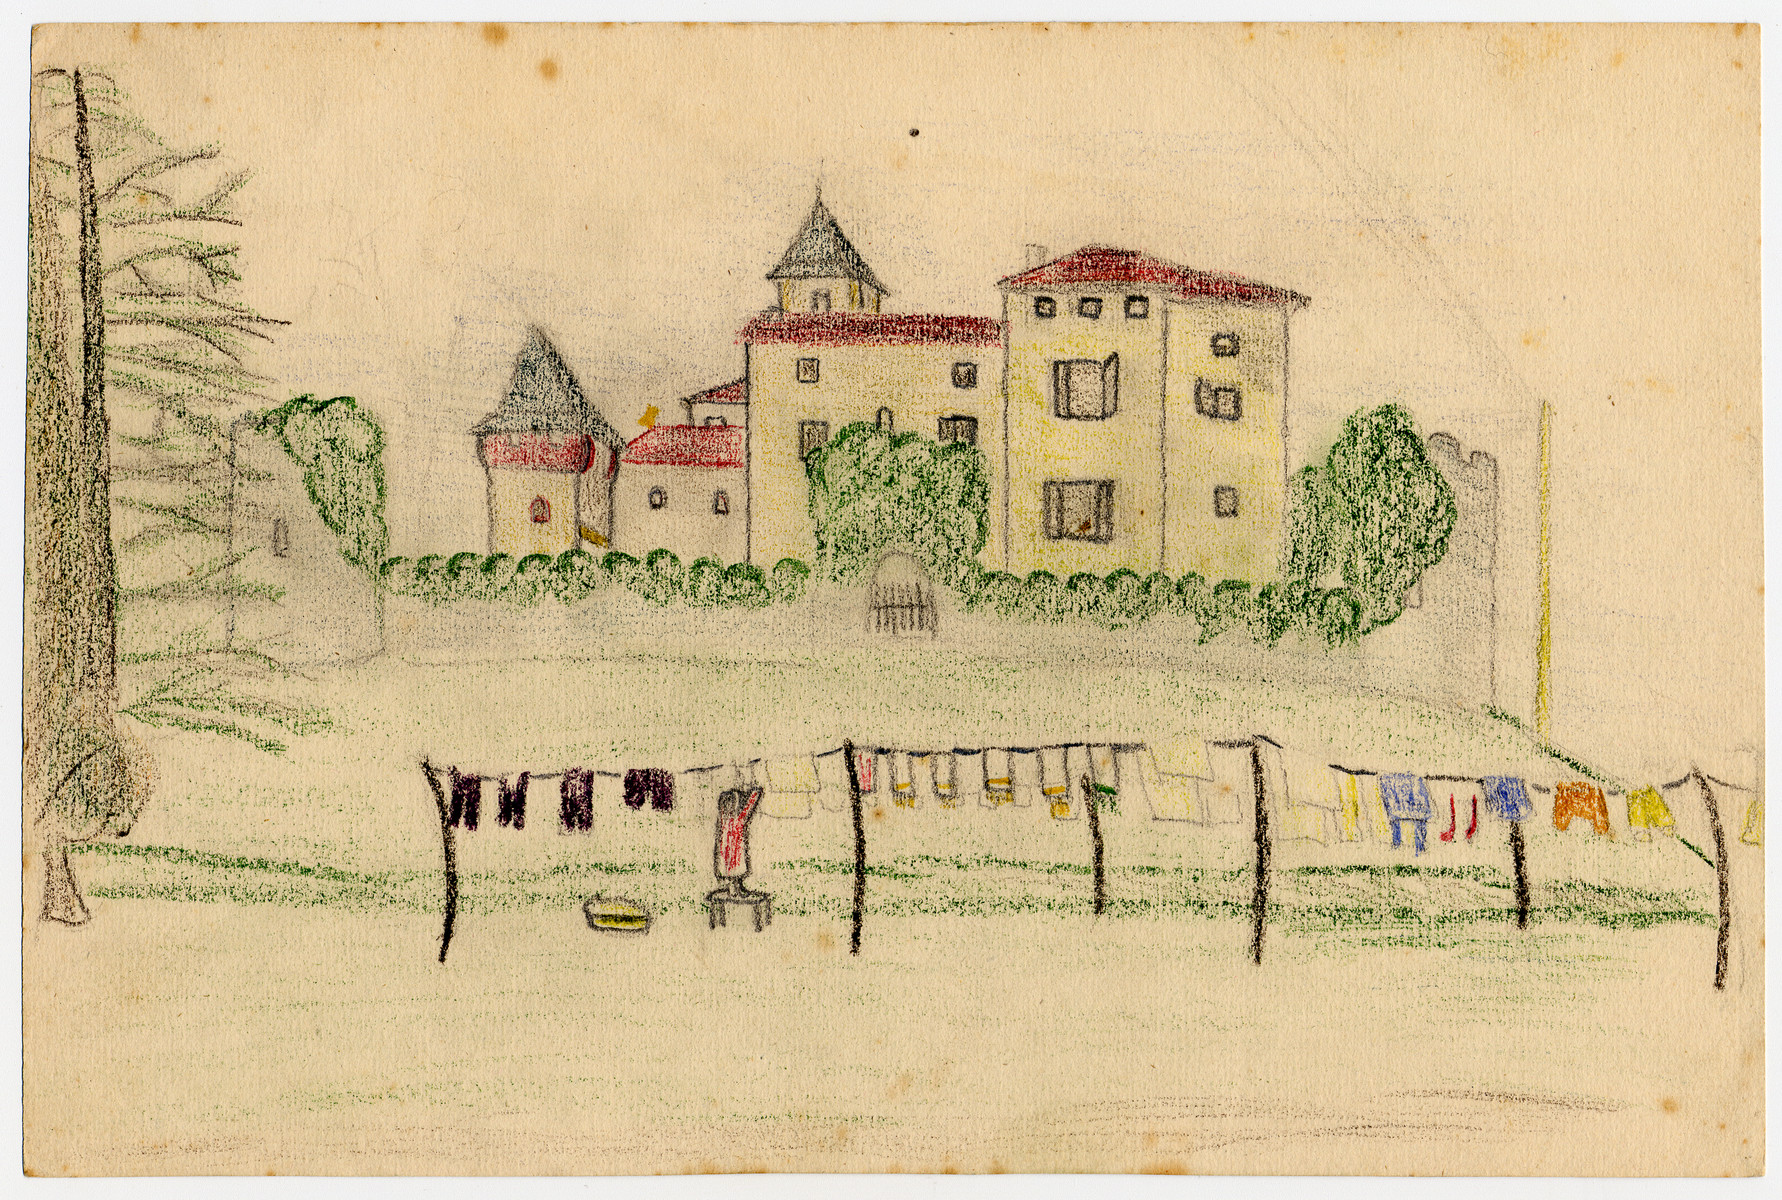 Color child's drawing of a woman hanging laundry outside the Chateau de la Hille created by a child in hiding there.